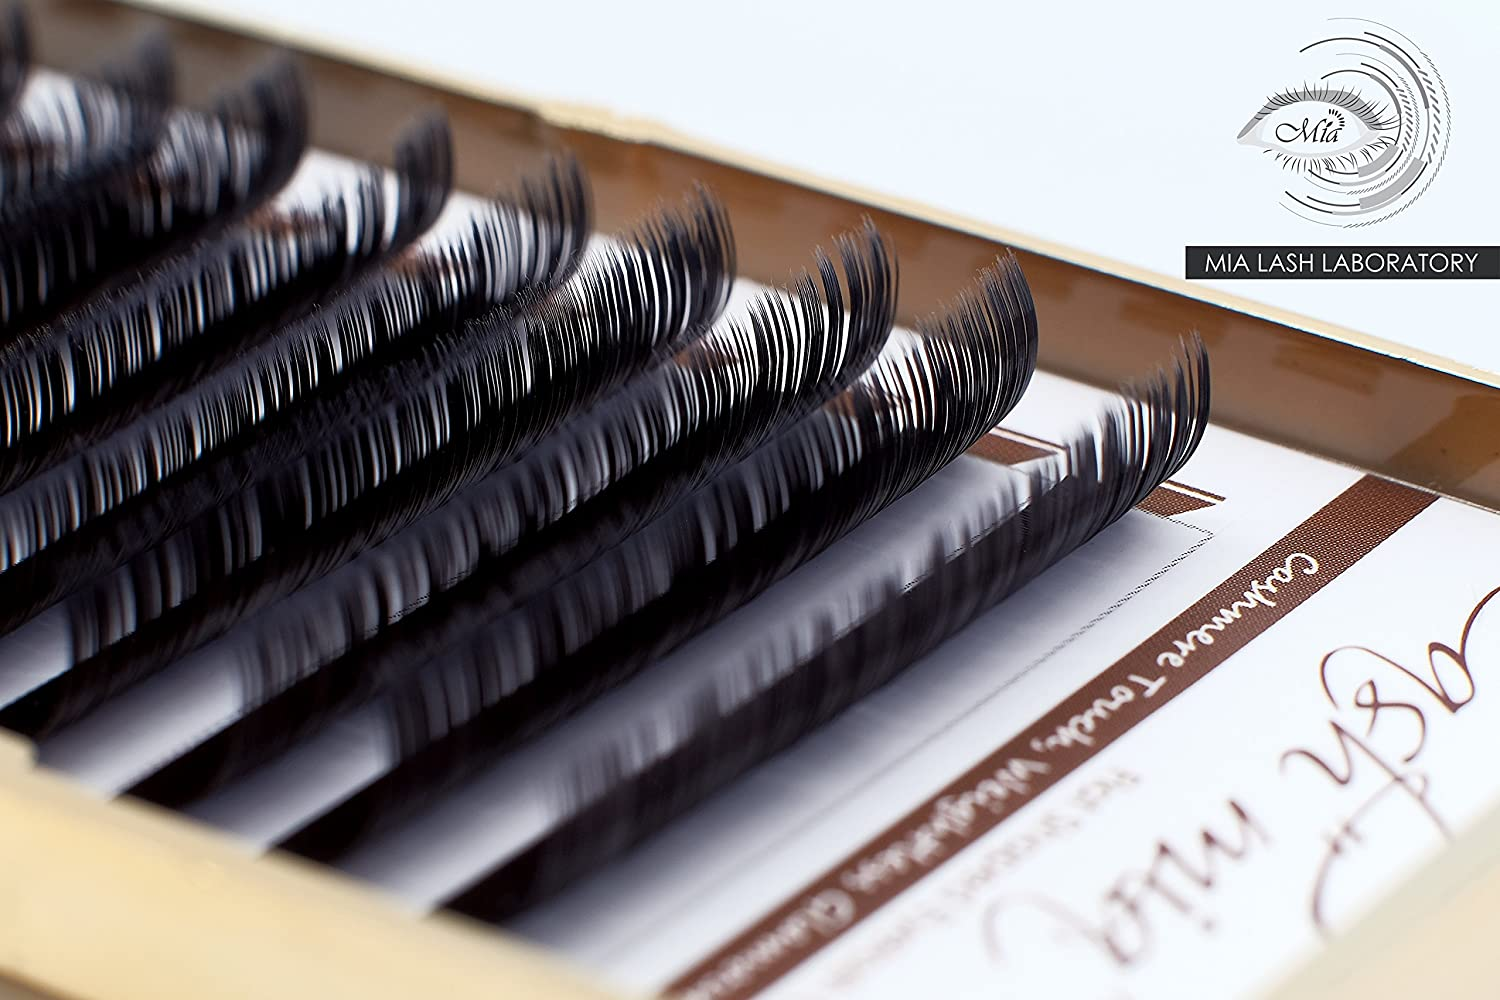 Amazon.com : [0.15 C] Cashmere Flat Shaped X-wrap Individual Eyelash Extension Semi Permanent in 8-14mm & Mixed Length Tray (0.15 C Mixed(8-14mm)) : Beauty